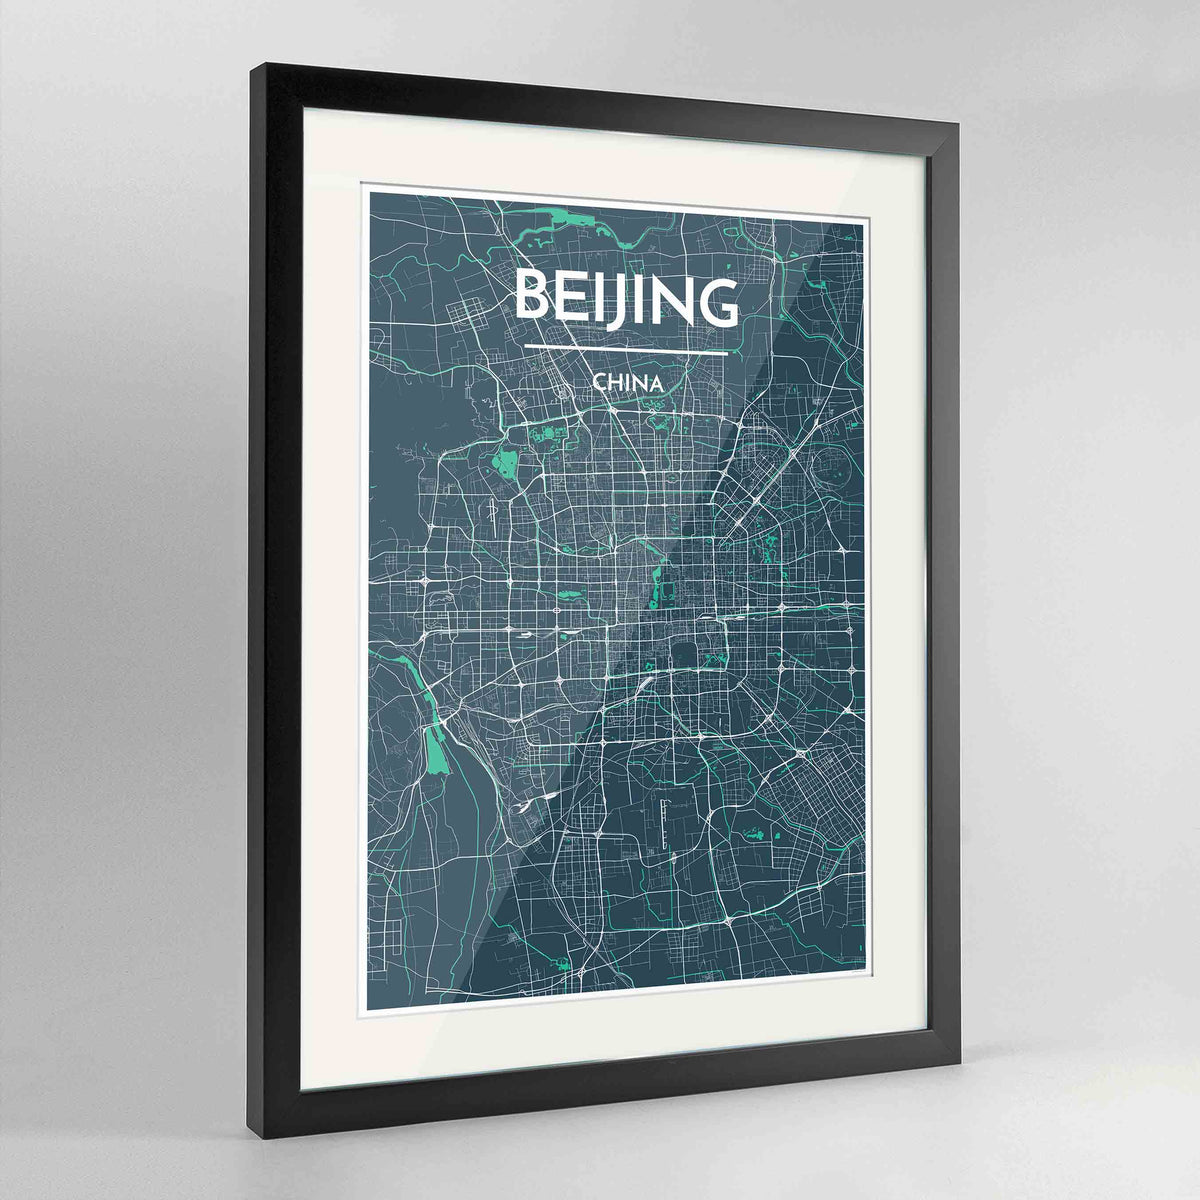 "Framed Beijing Map Art Print 24x36"" Contemporary Black frame Point Two Design Group"